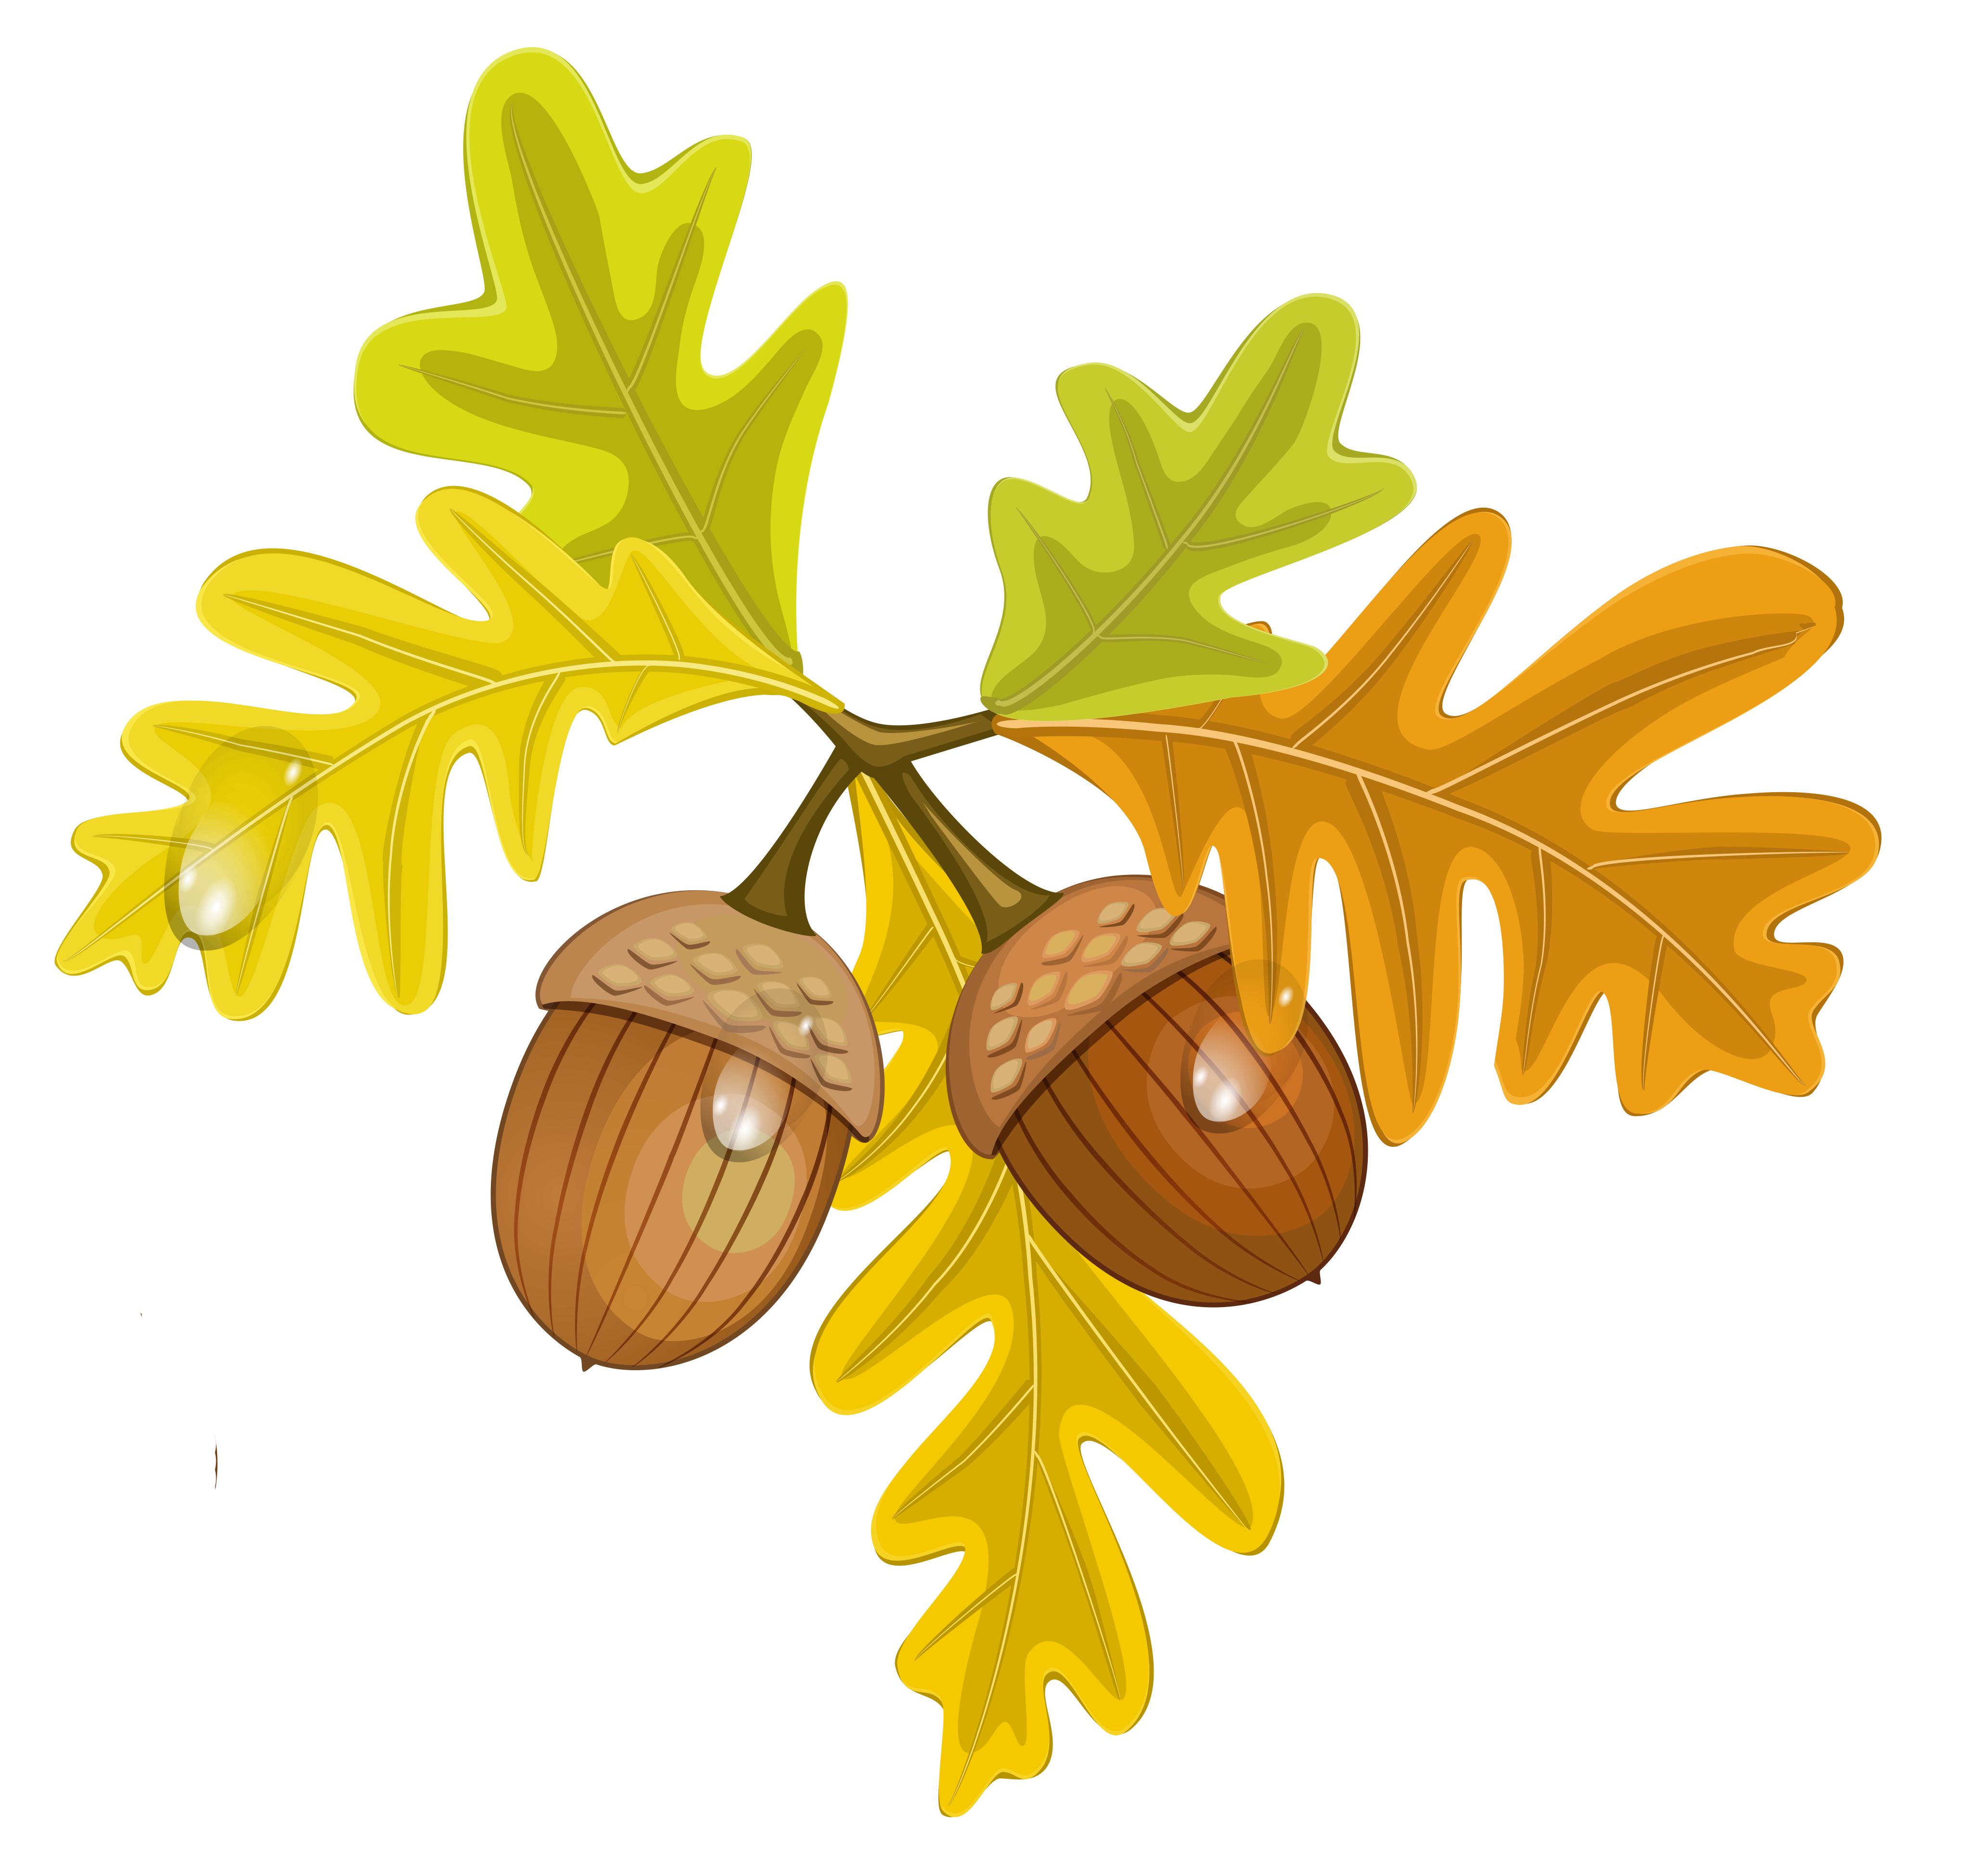 Fall leaves border labels png. Transparent with acorns gallery